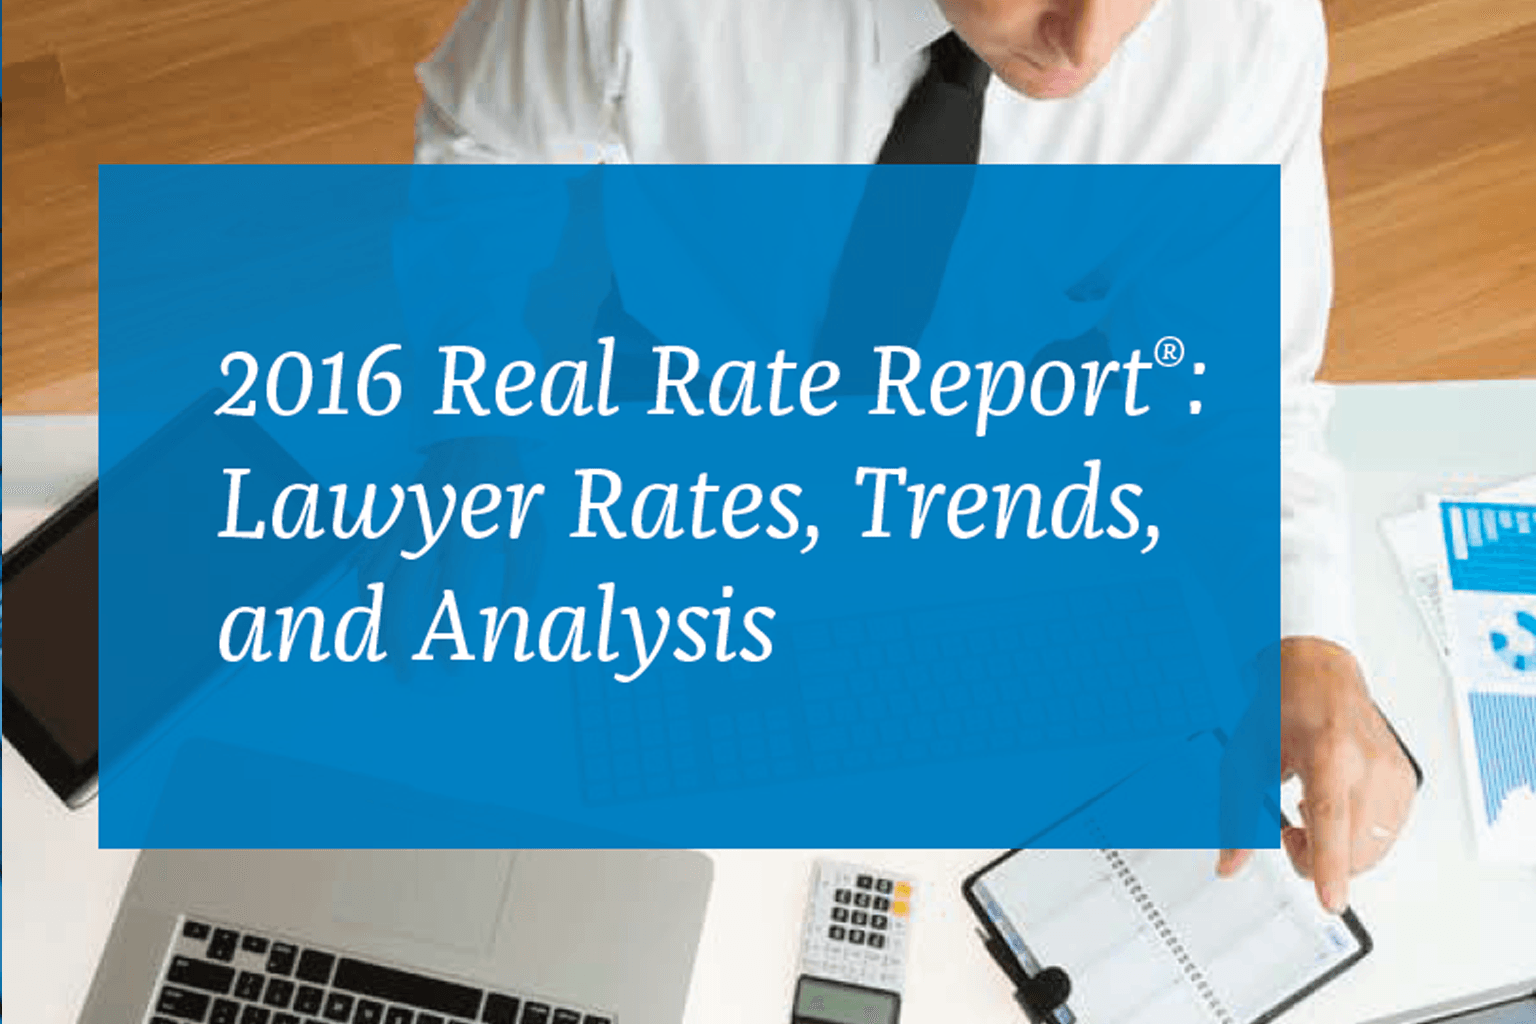 Real Rate Report